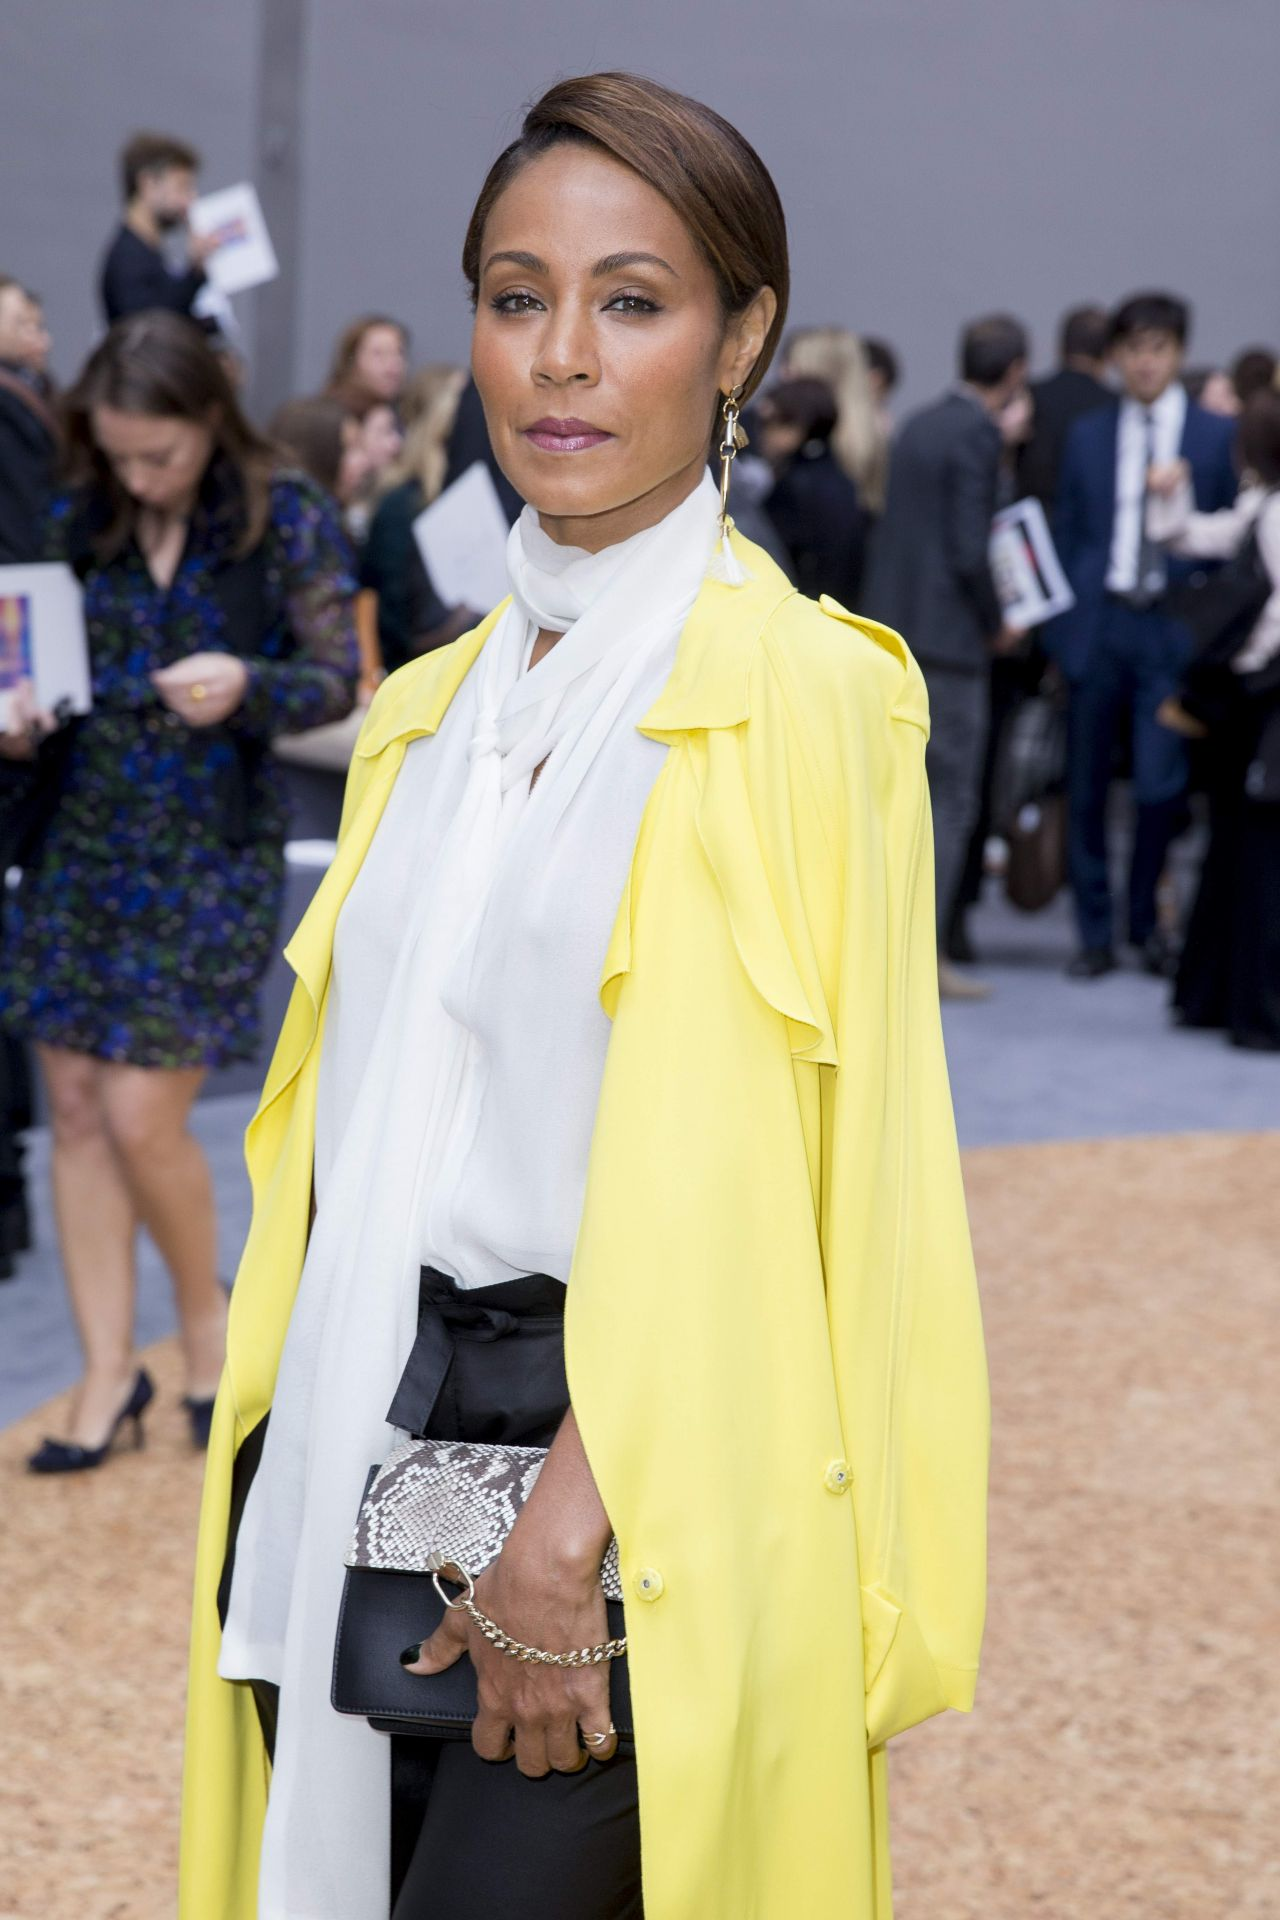 jada-pinkett-smith-at-the-chloé-fashion-show-october-2015_5